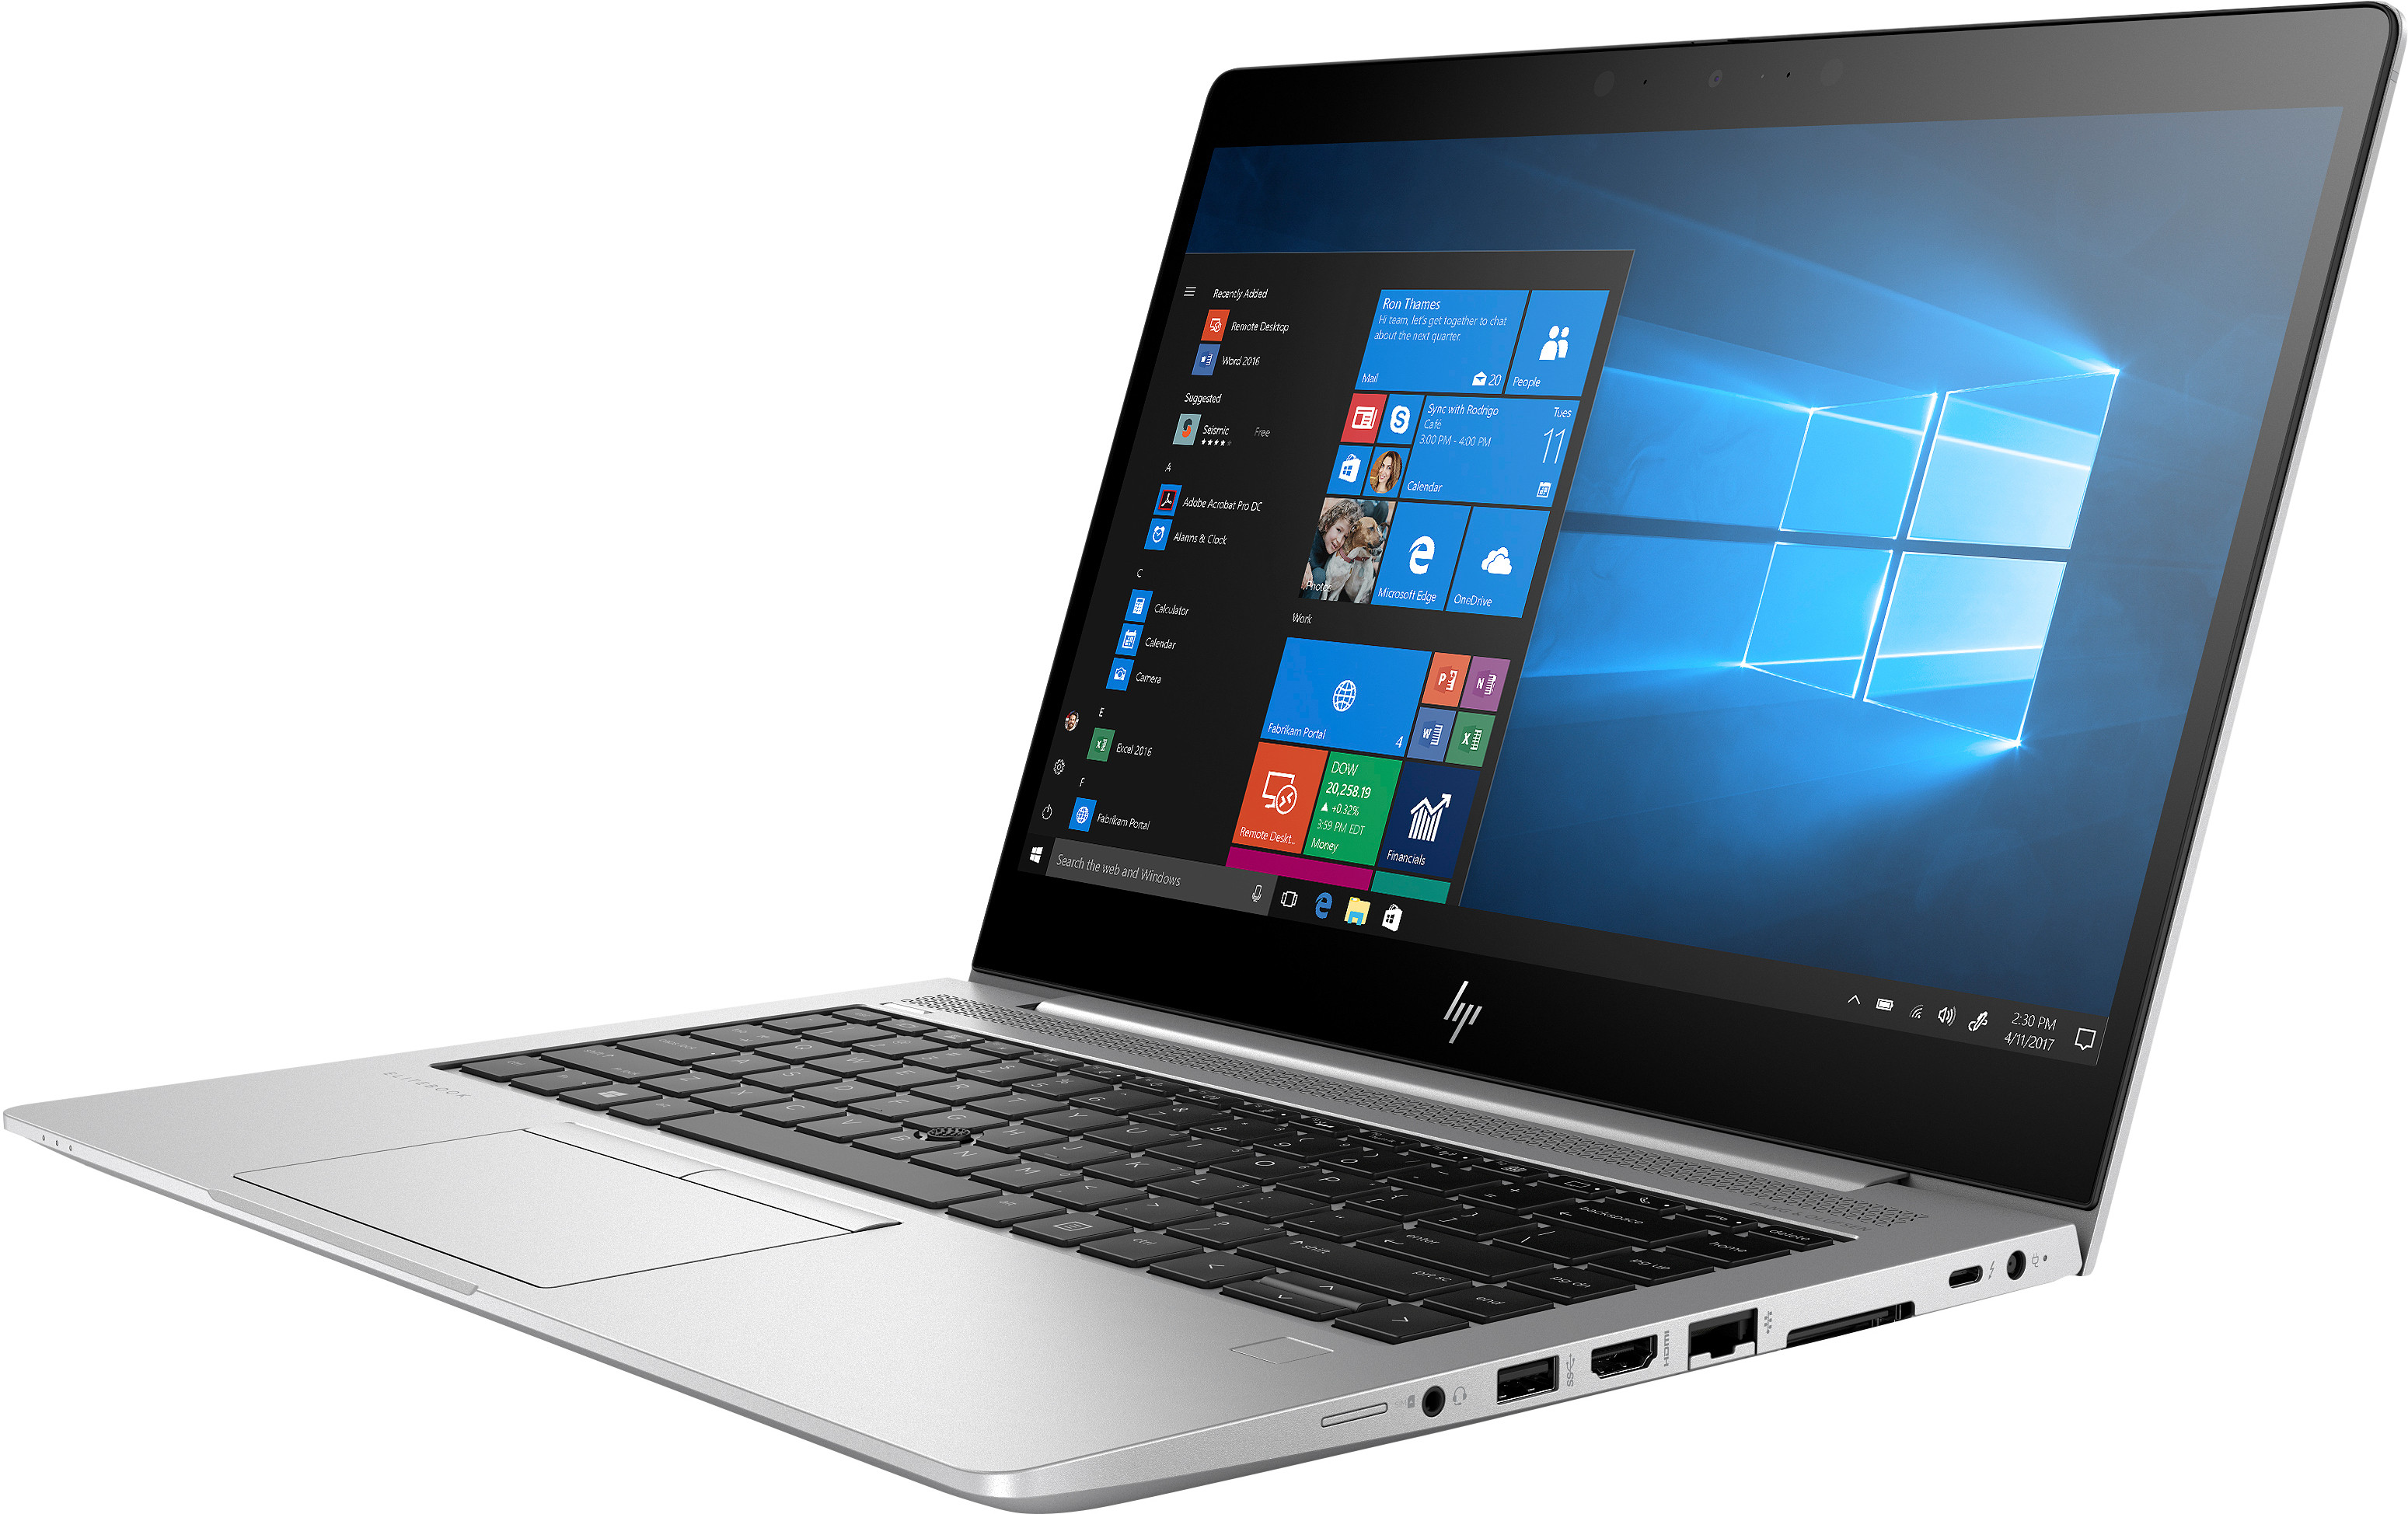 HP EliteBook 840 G6 - Core i5 8265U 1.6 GHz - Win 10 Pro 64-Bit - 16 GB RAM - 512 - Notebook - Core i5 Mobile